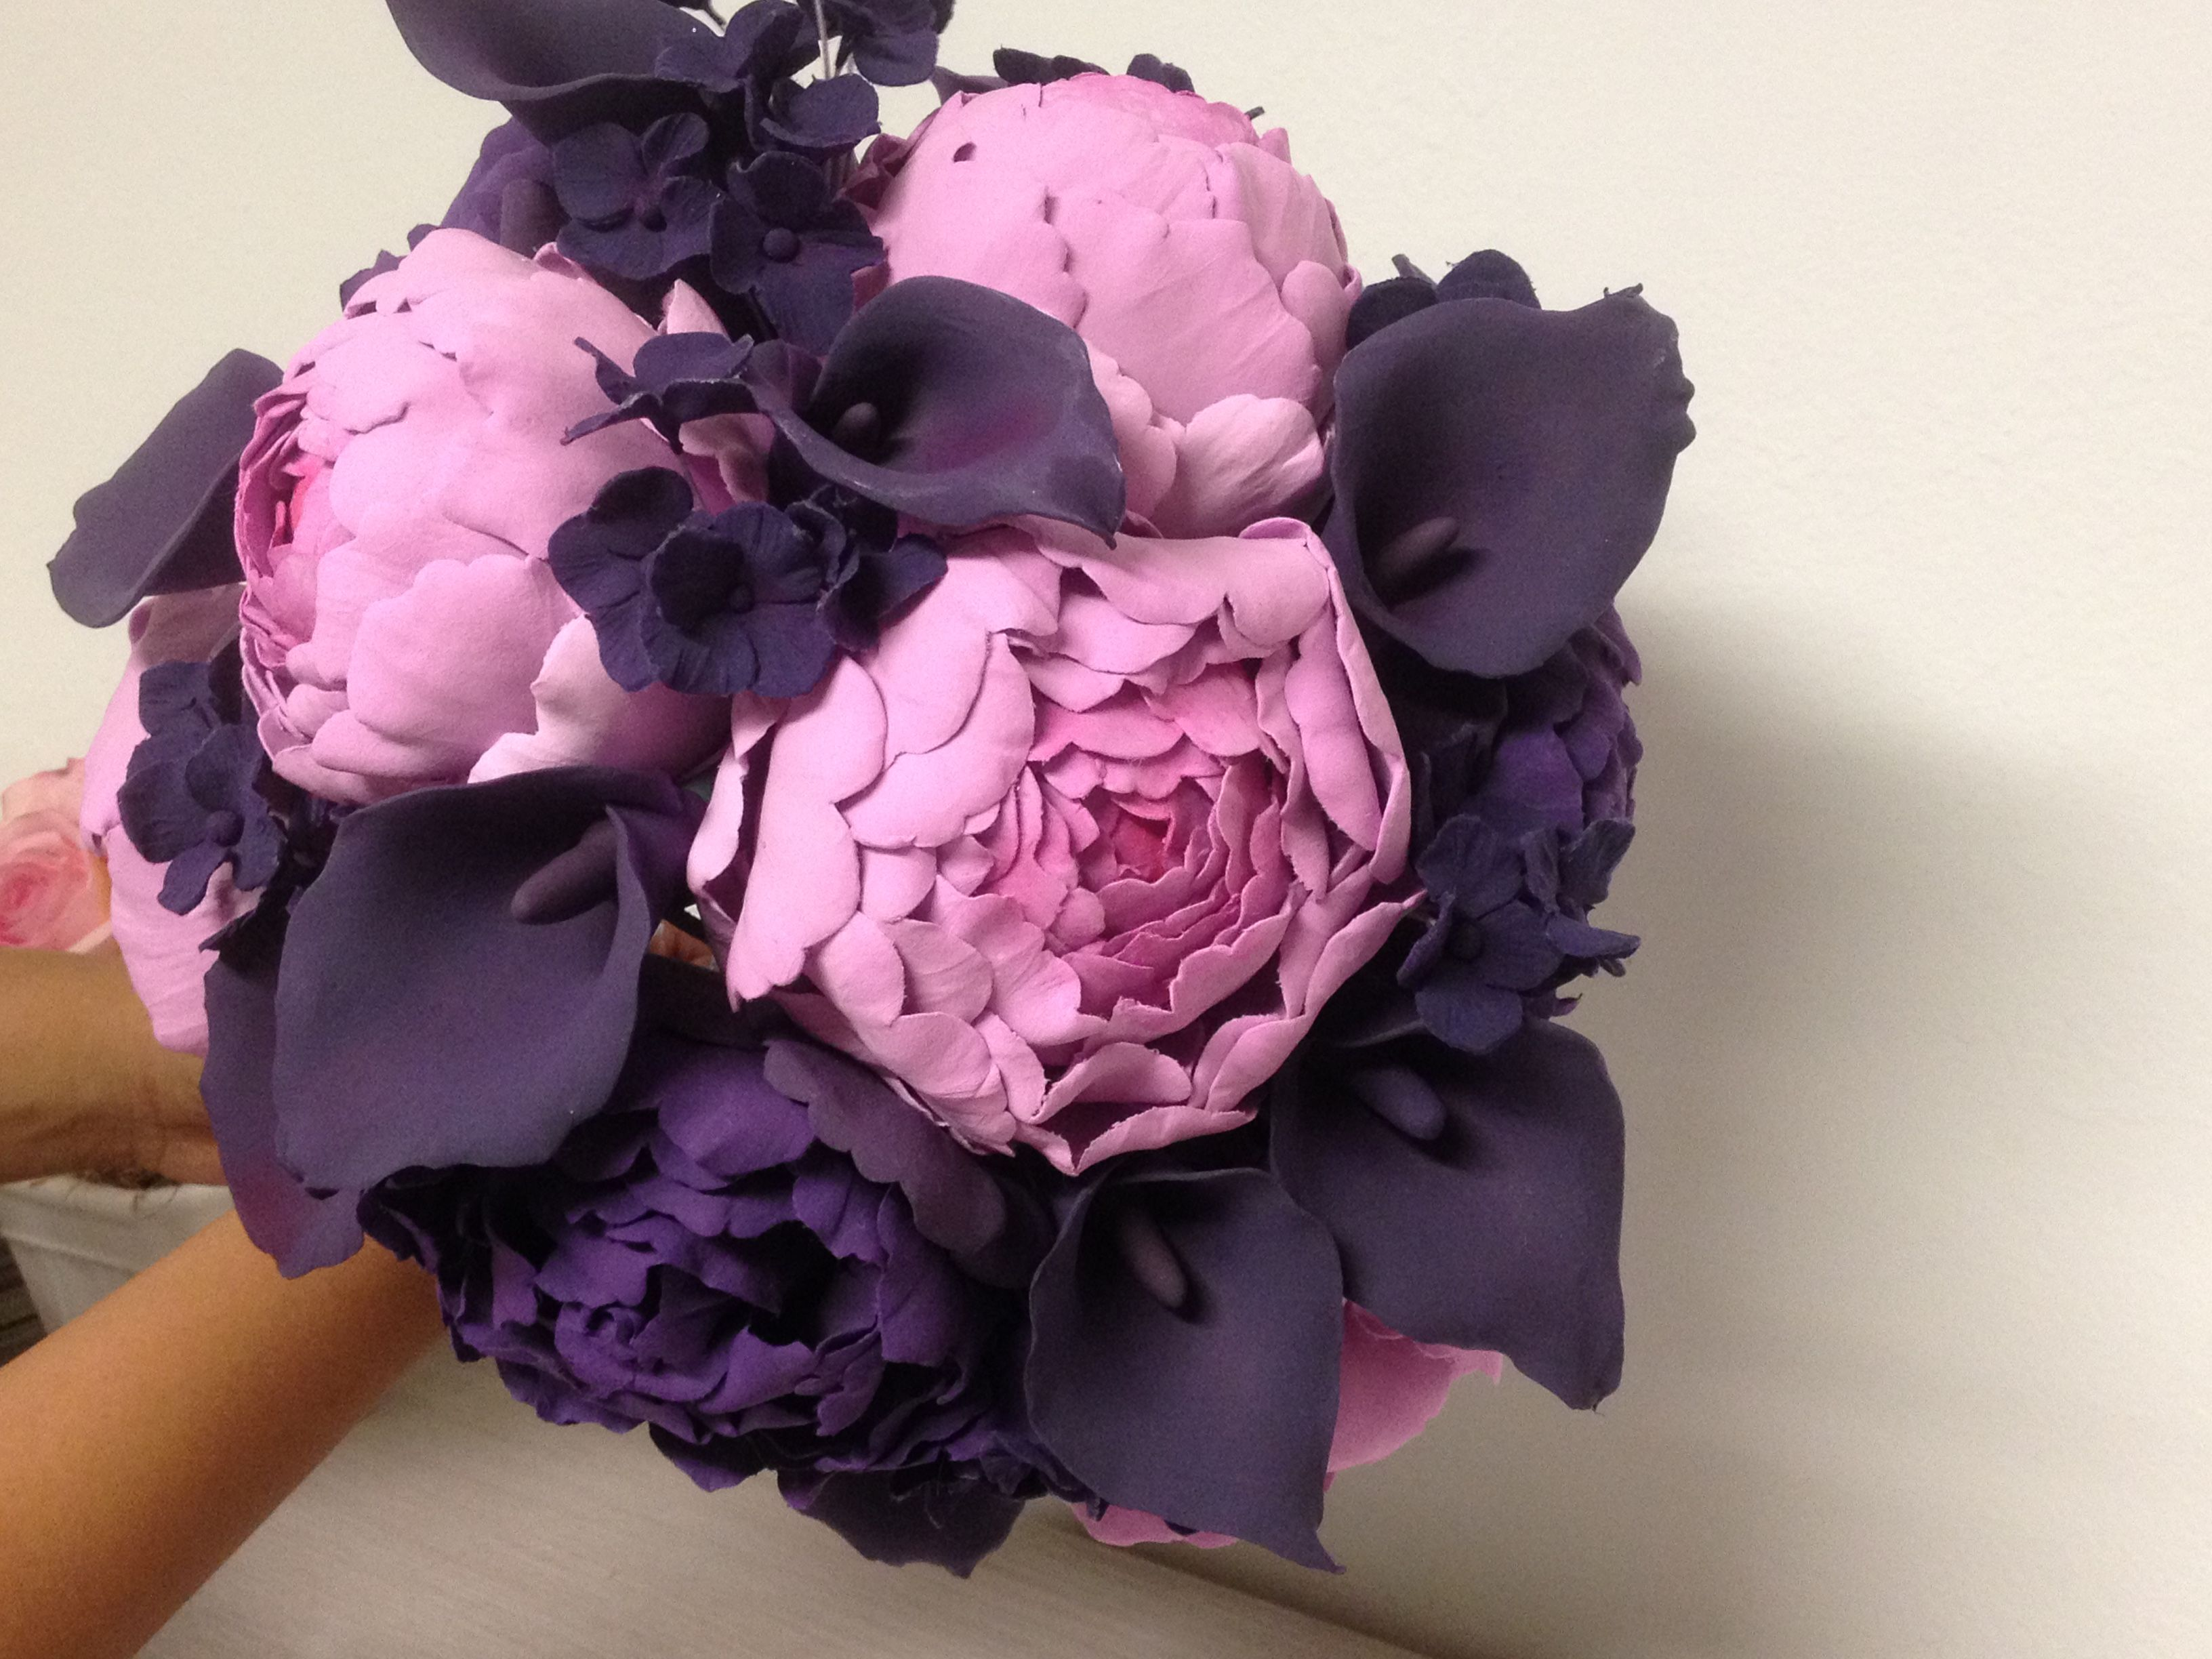 Wedding bouquet wedding clay flower bouquet clay flowers purple wedding bouquet wedding clay flower bouquet clay flowers purple and lavender clay flowers izmirmasajfo Images